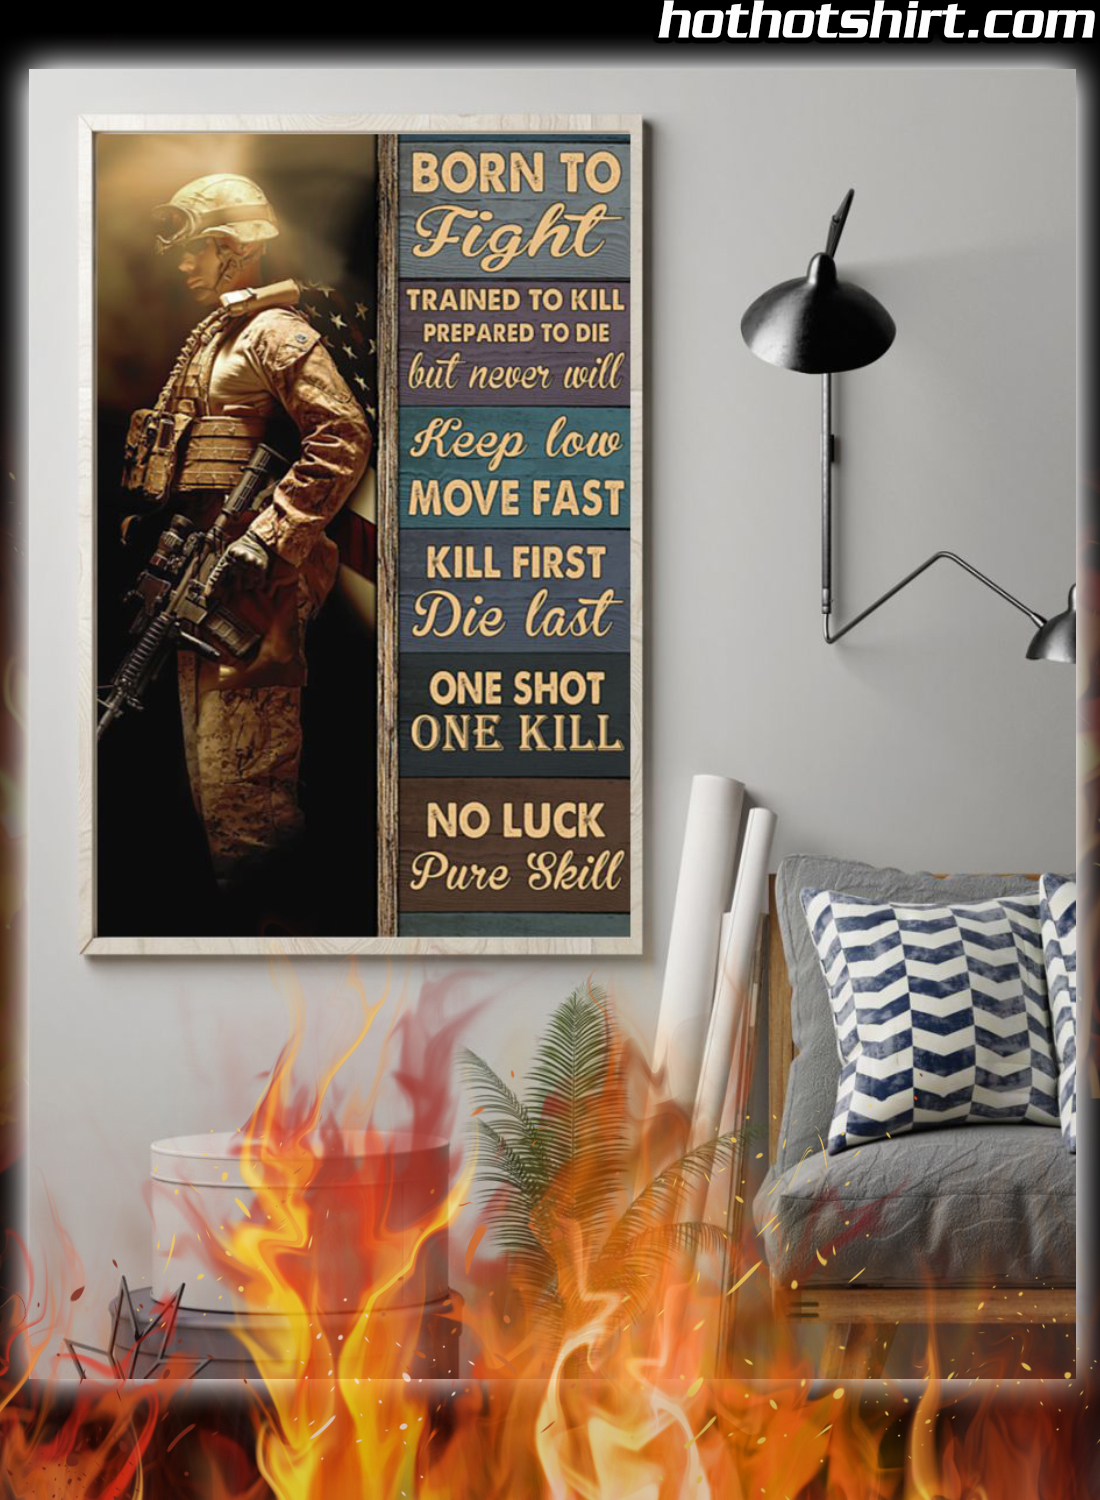 Veteran Born To Fight Trained To Kill Prepared To Die Poster 1